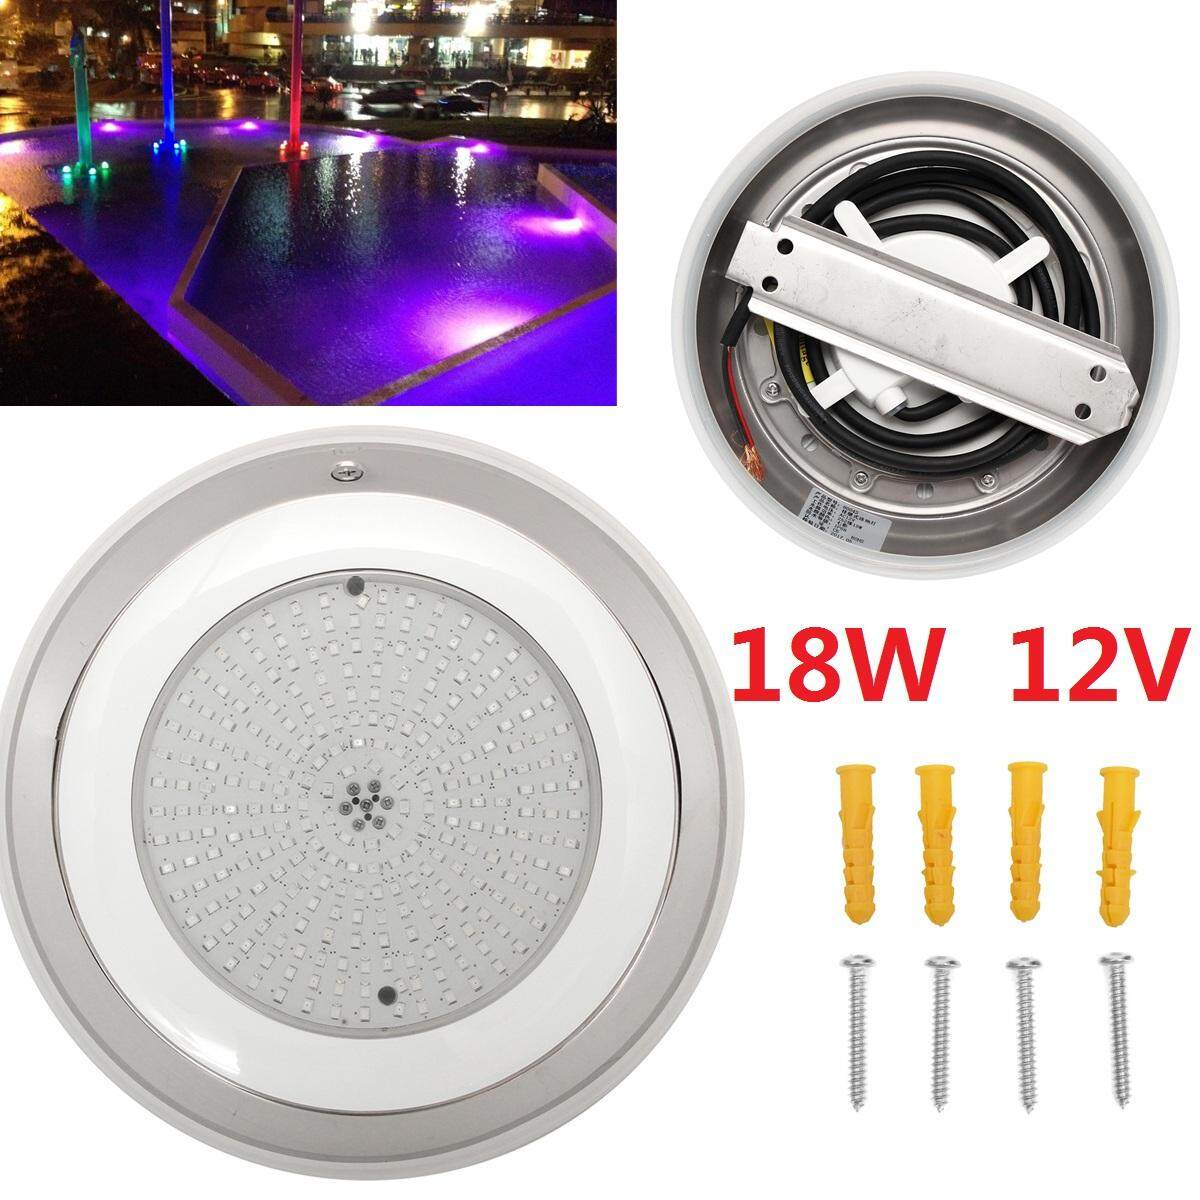 Stainess 100% Resin filled led swimming pool lights 18W RGB multi-color 12V - intl